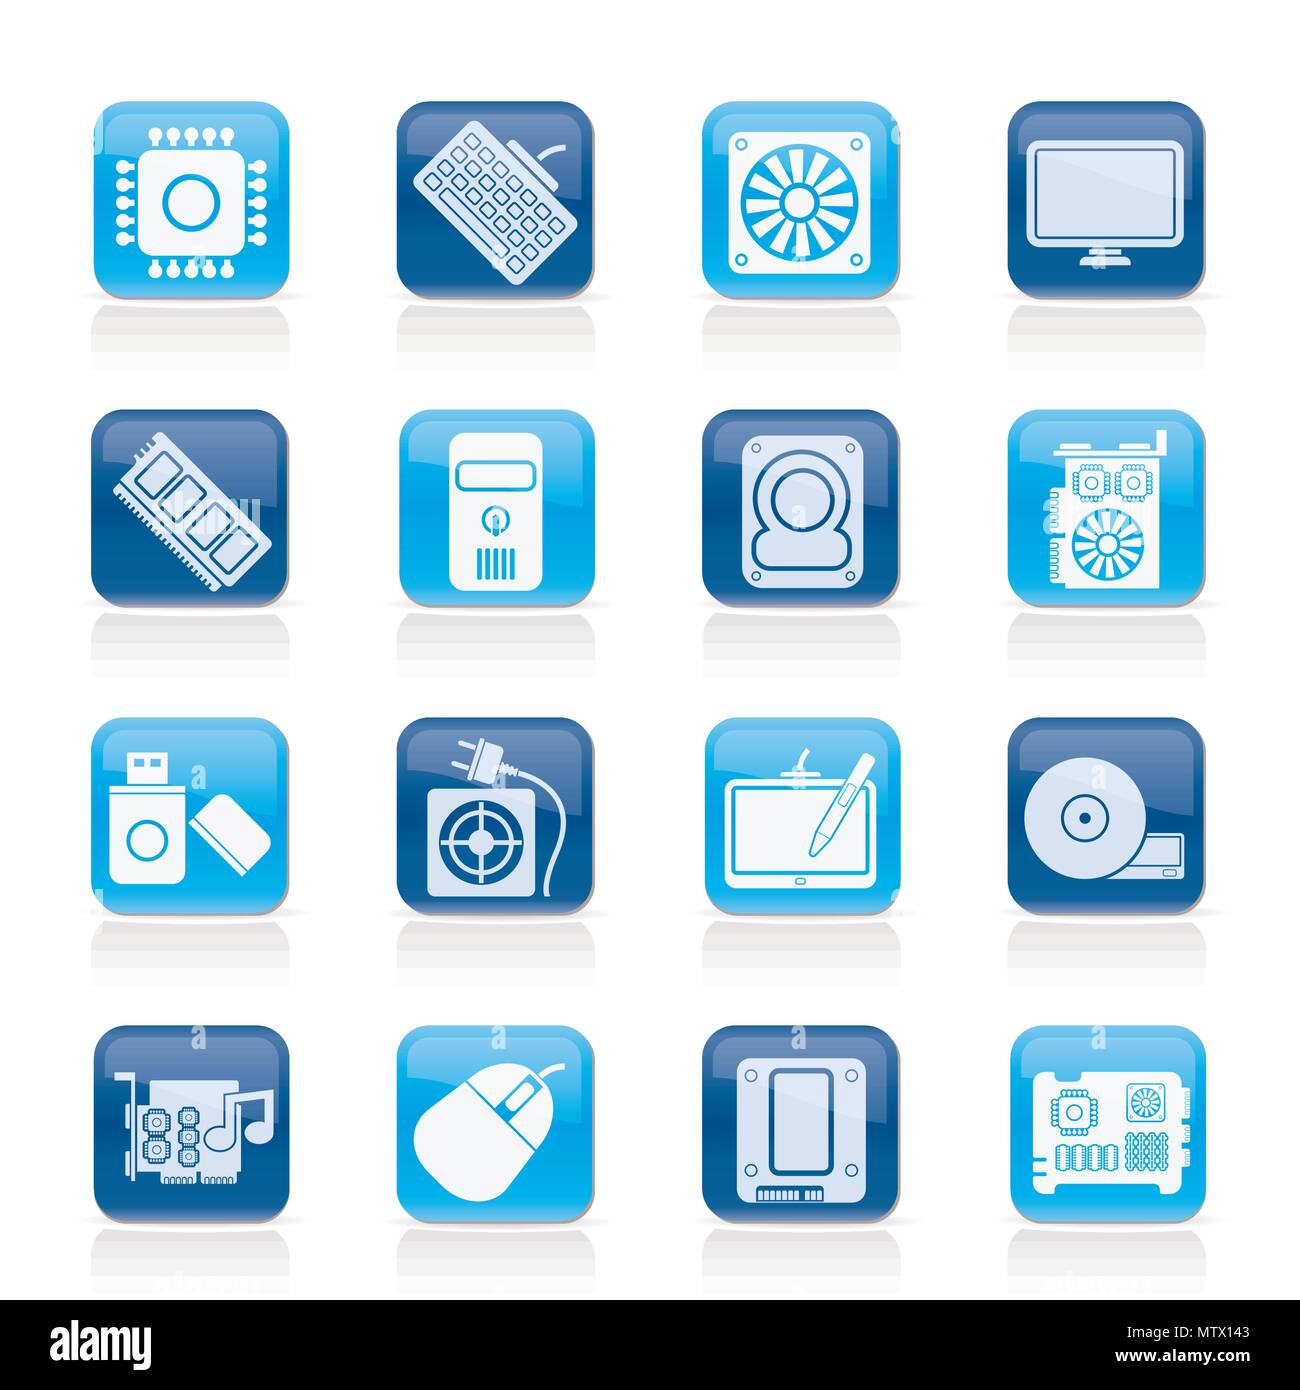 Computer part icons - vector icon set - Stock Image